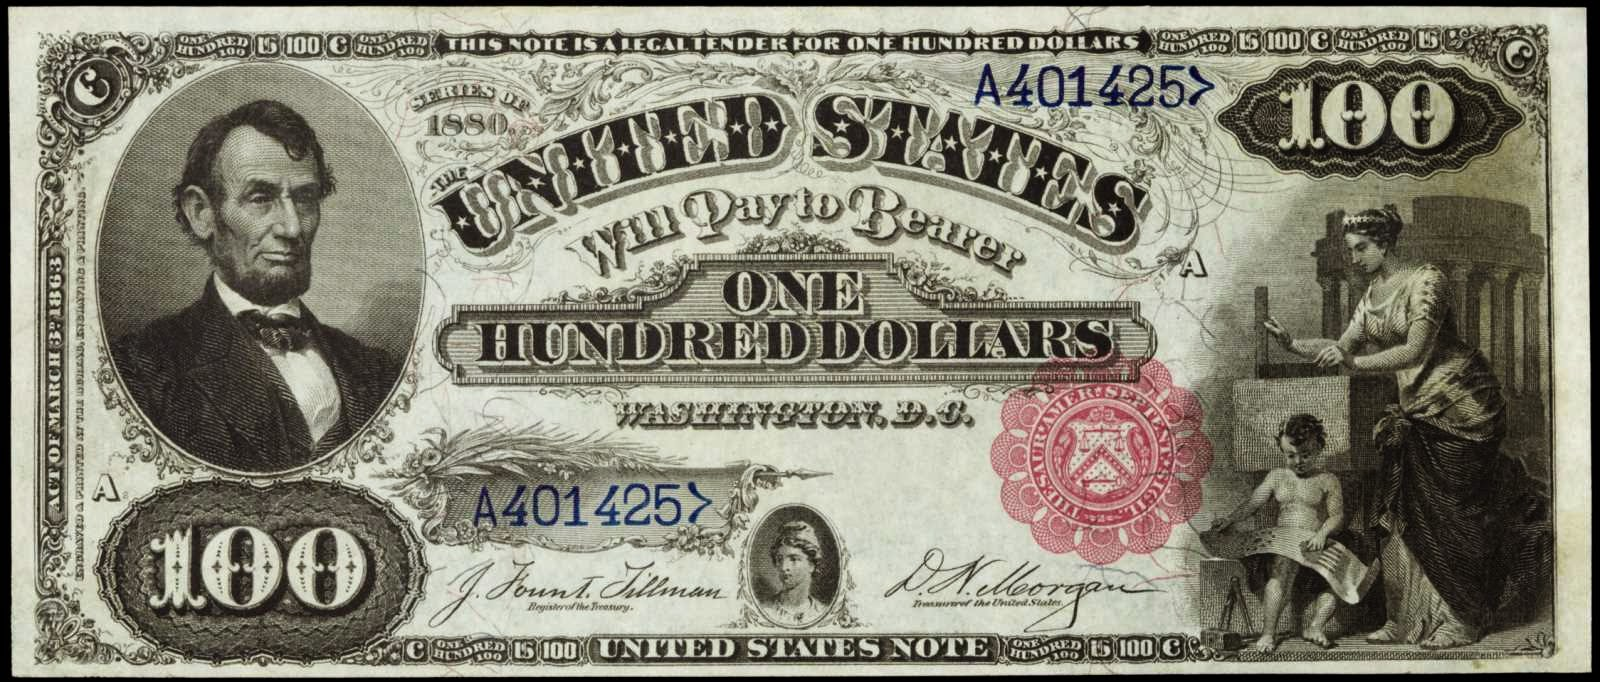 History Of $100 Bill Brittany Selman - Lessons - Tes Teach